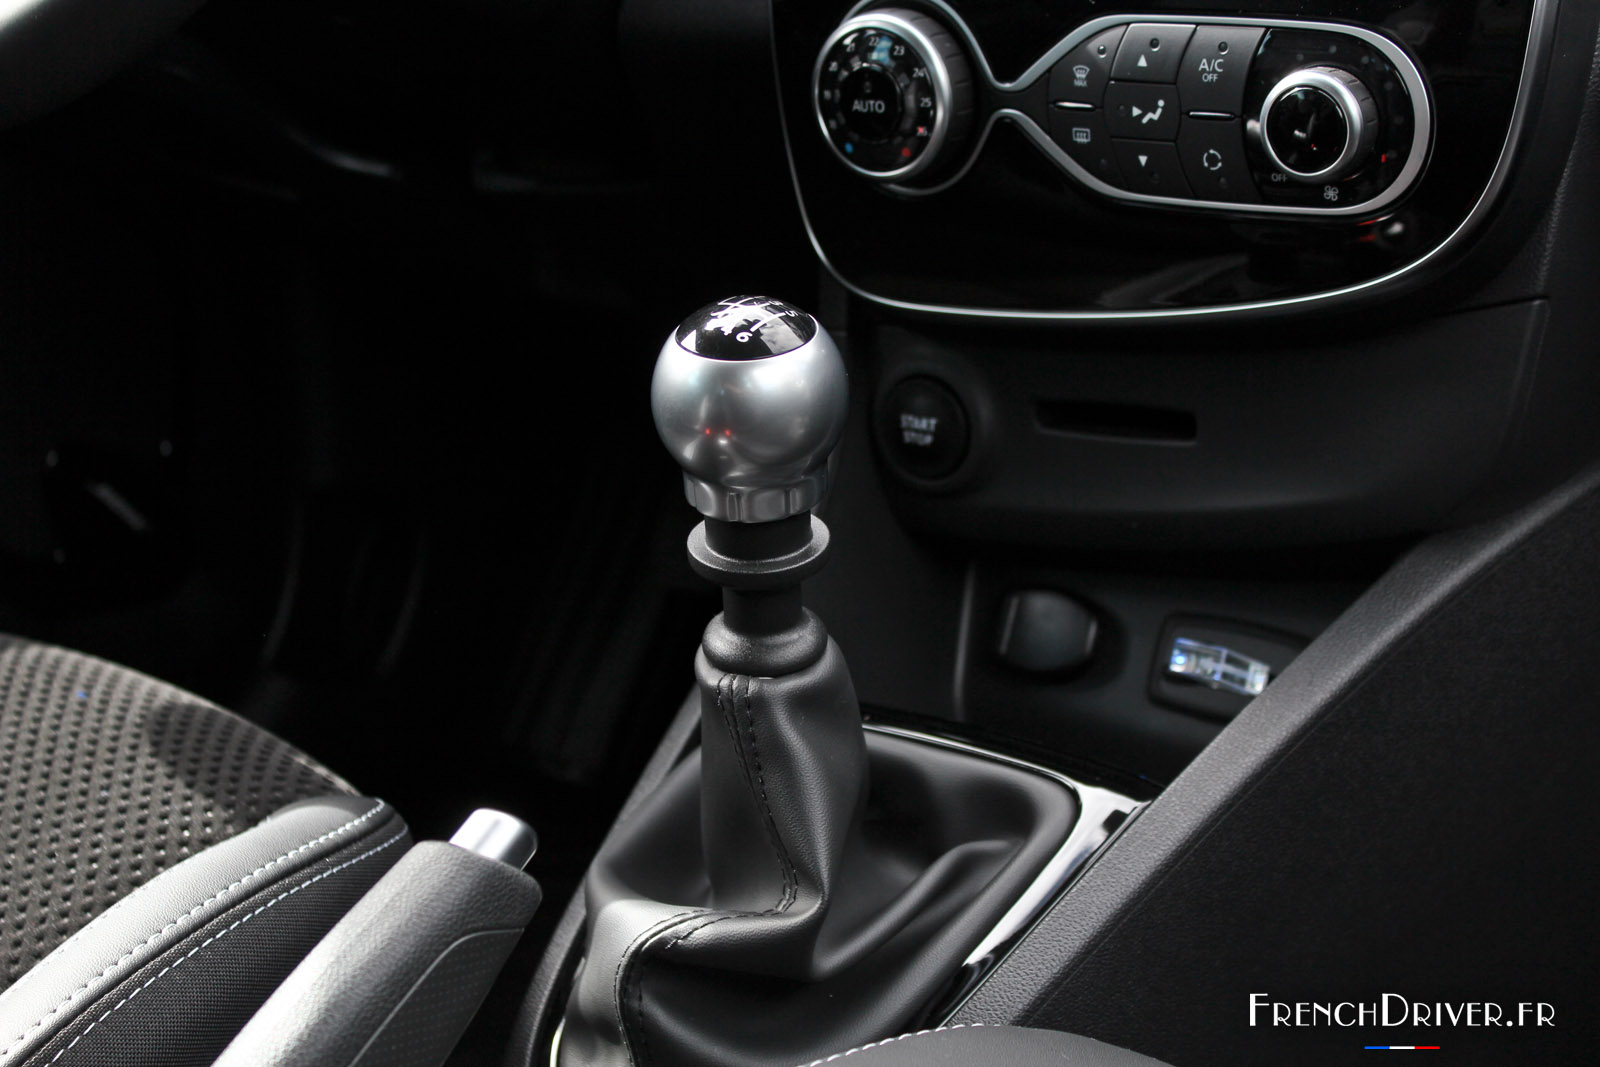 essai-renault-clio-4-facelift-2016-frenchdriver-1-027